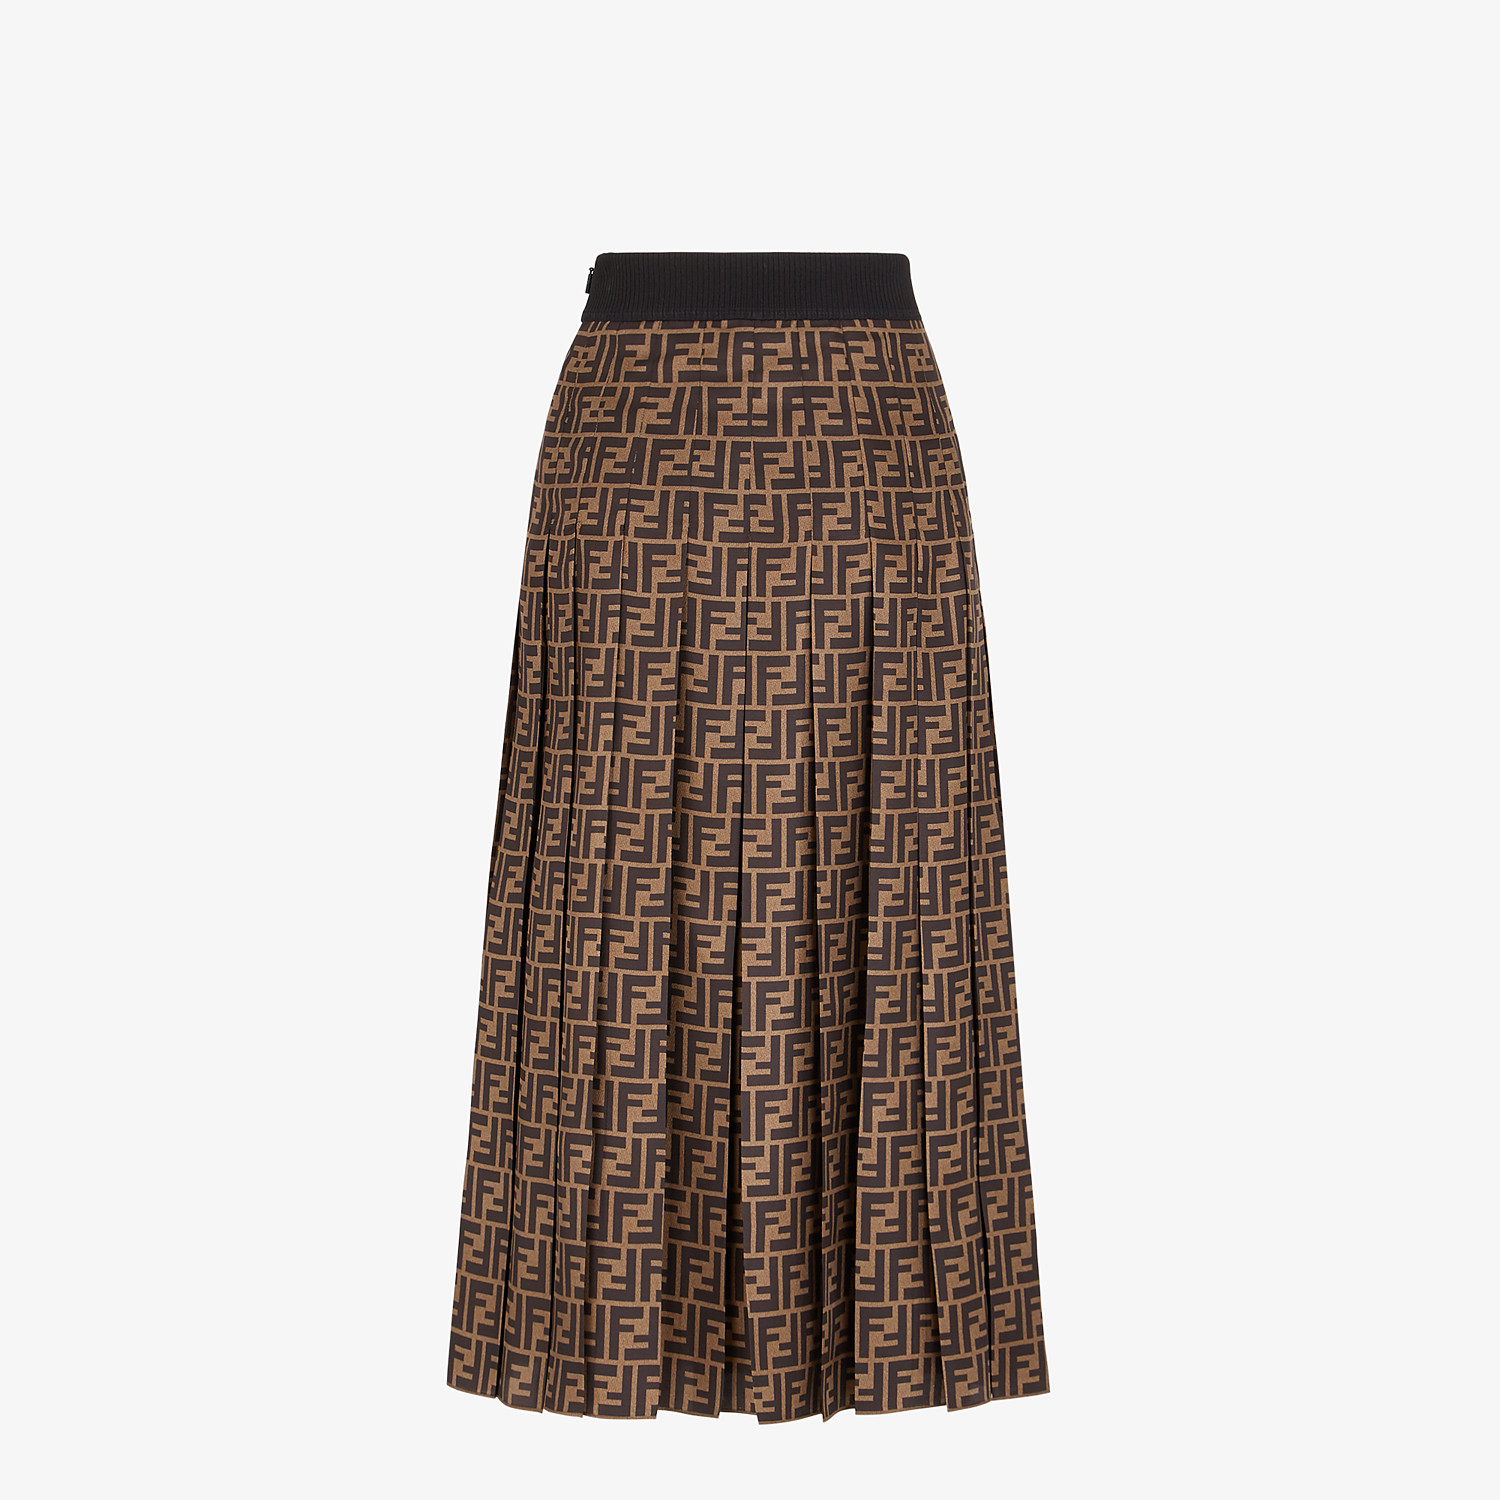 FENDI SKIRT - FF motif twill skirt - view 2 detail